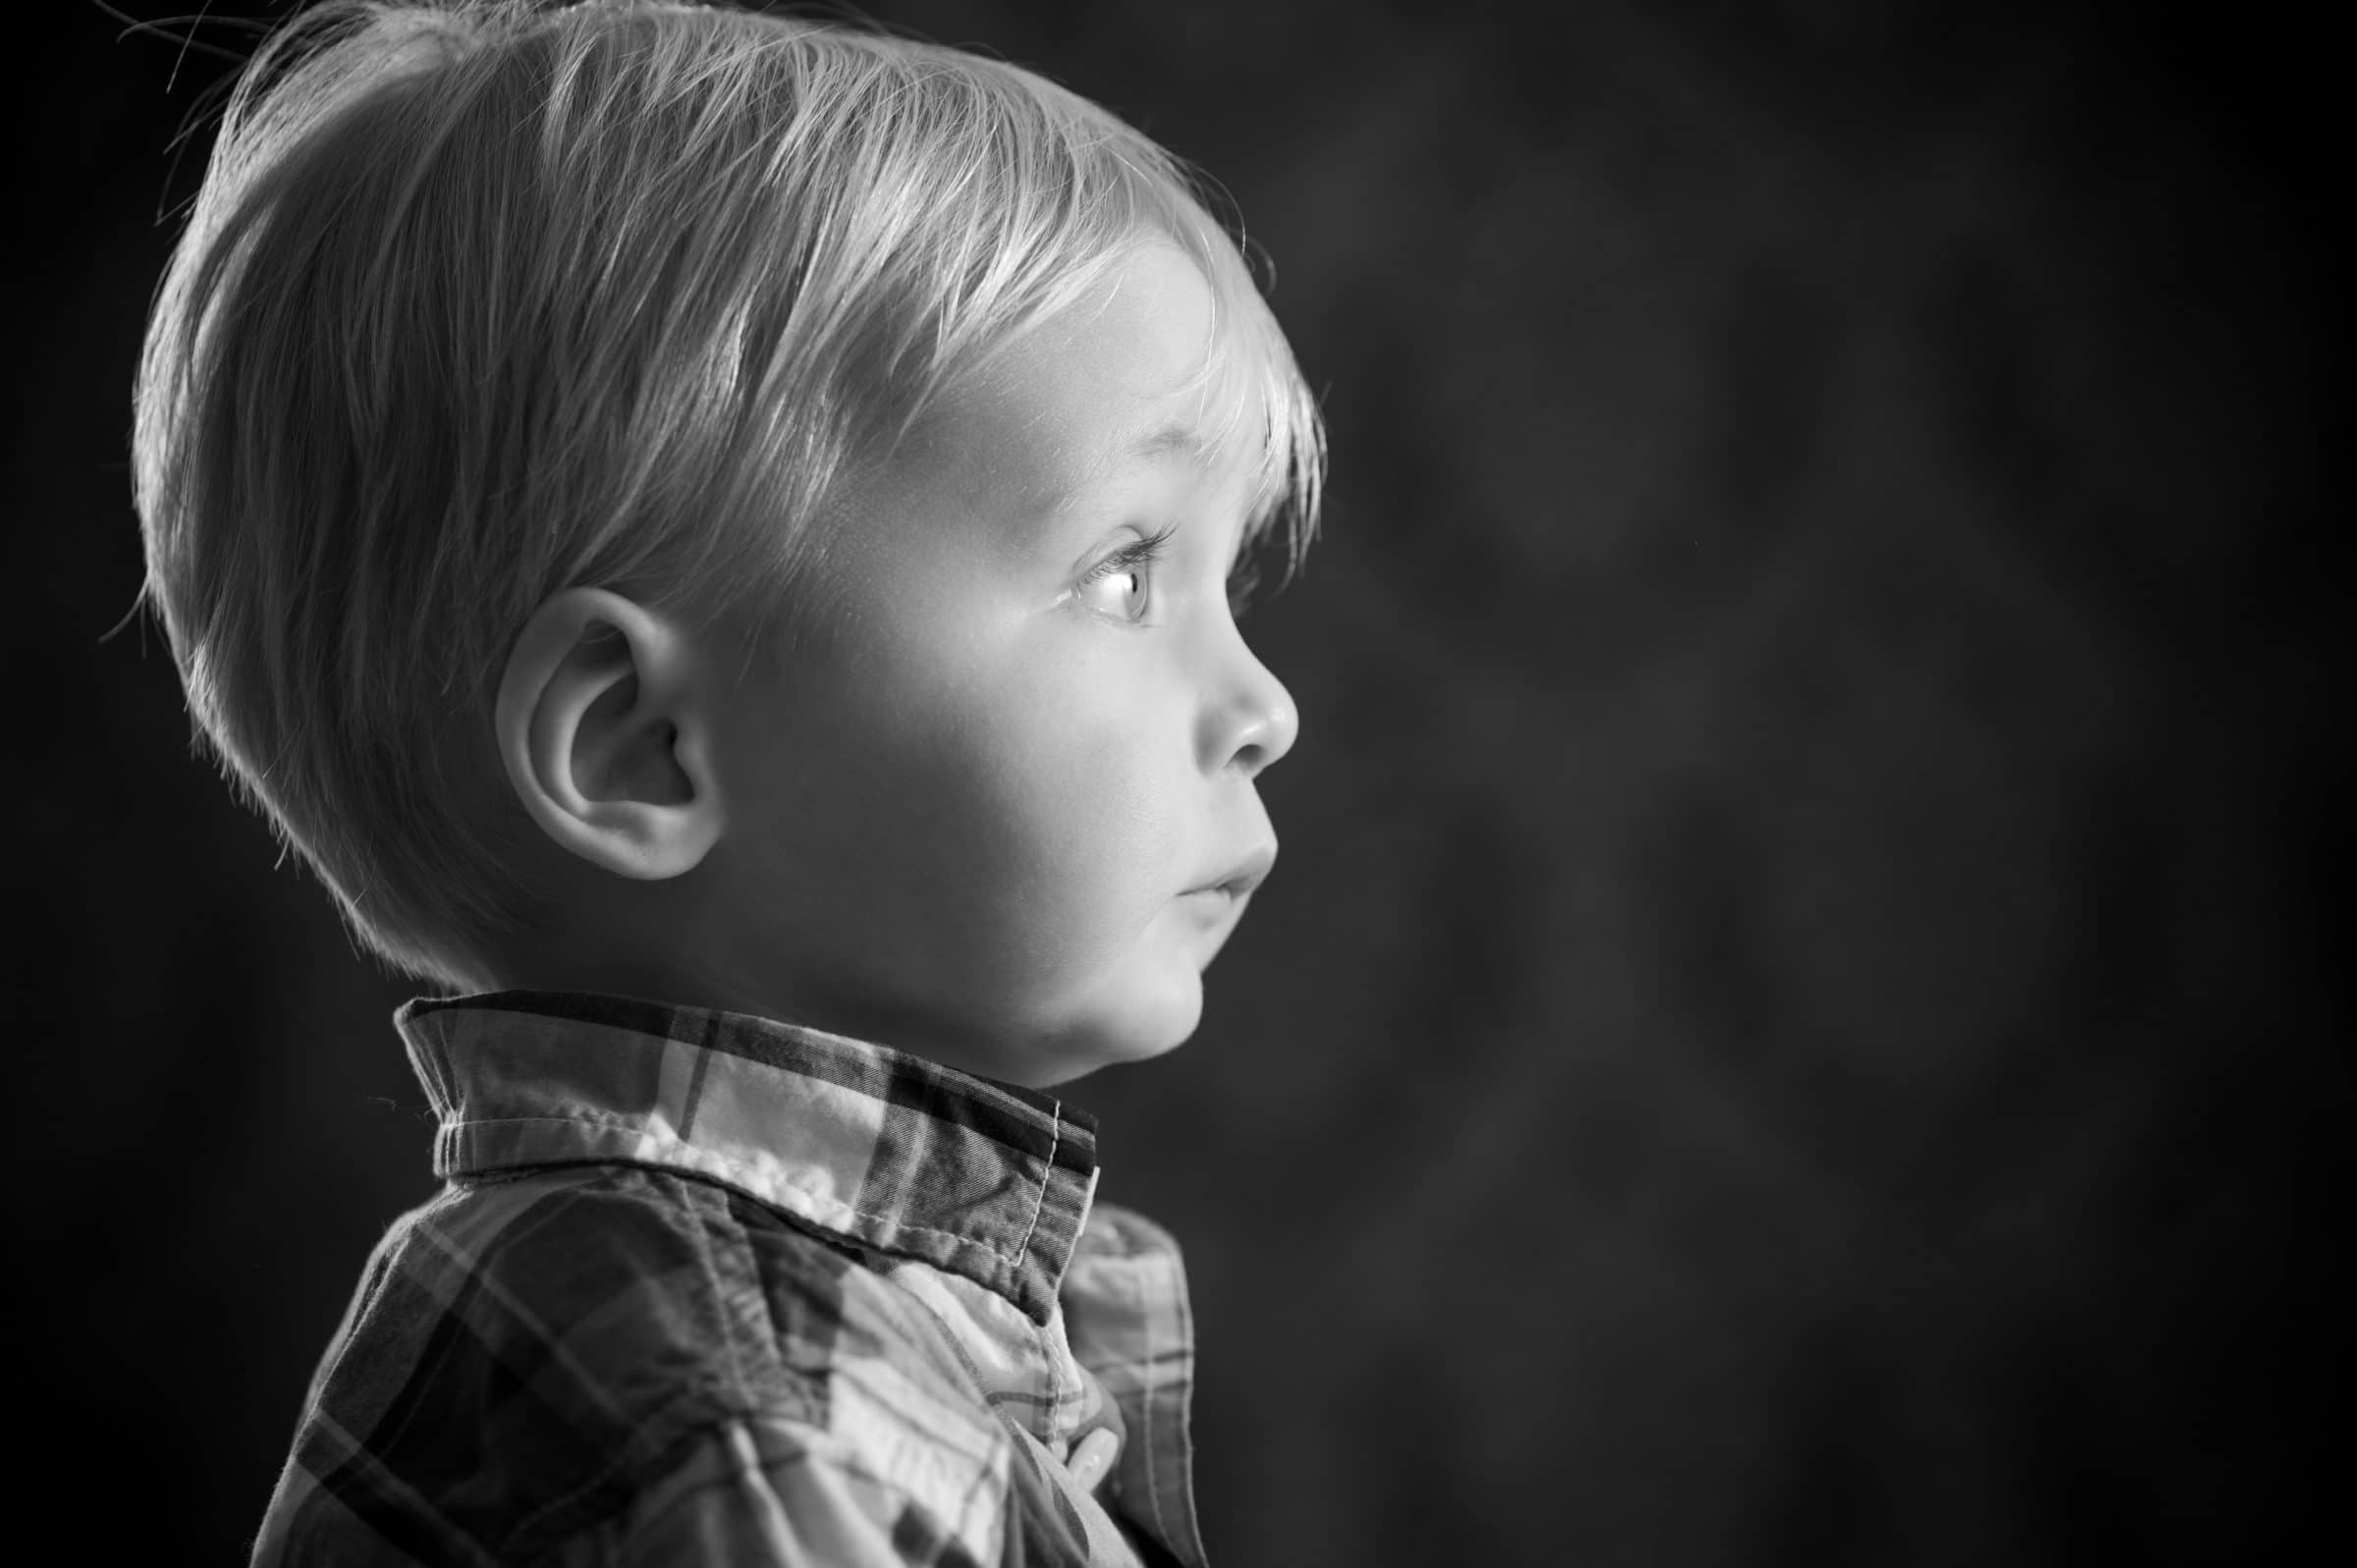 profile of young boy in B&W